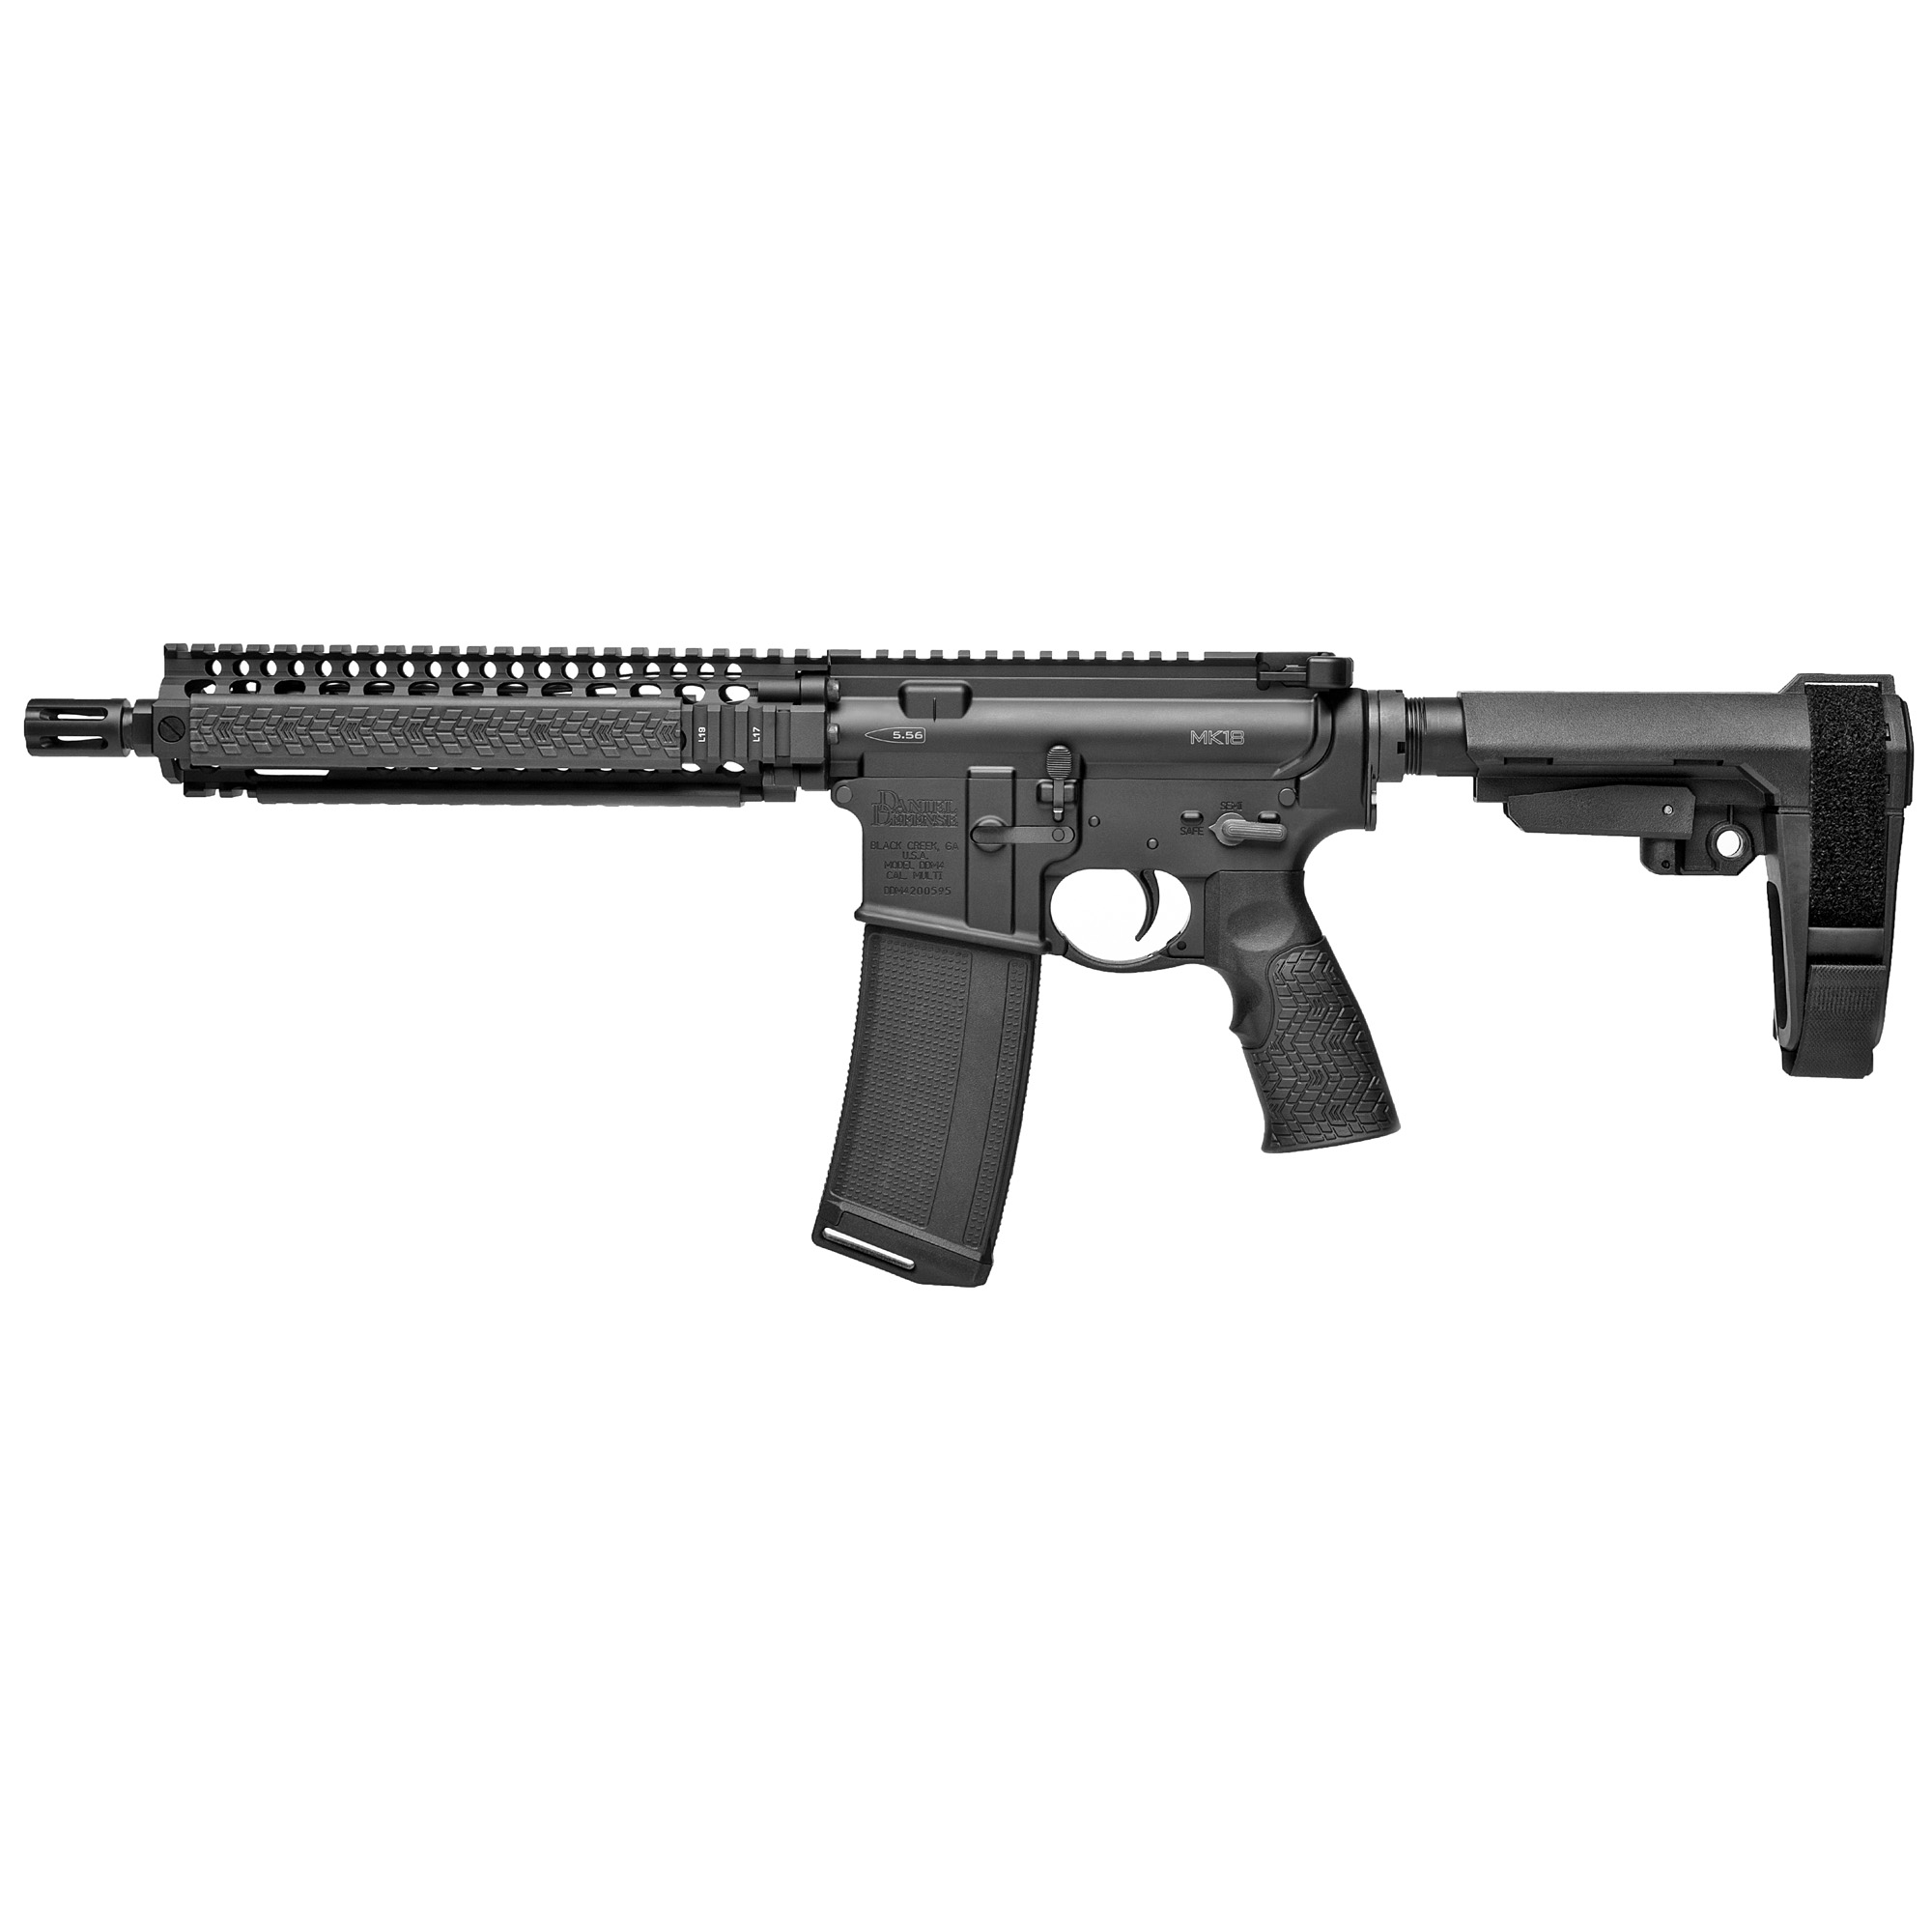 "The Daniel Defense MK18 Pistol"" equipped with the SB-Tactical SOB Pistol Stabilizing Brace"" is a variation of the MK18 SBR"" which has been extremely popular within the Law Enforcement and Special Operations communities. This firearm is classified as a Pistol and not a Short Barreled Rifle (NFA regulated items require ATF approval and a tax stamp). The Daniel Defense MK18 Pistol features the railed forend Daniel Defense currently provides to USSOCOM and a 10.3"" Cold Hammer Forged Barrel"" the same length commonly used for CQB operations. The MK18 RISII features the Bolt-Up System and has been rigorously tested prior to fielding by USSOCOM. This pistol comes equipped with the rugged and comfortable Daniel Defense Pistol Grip with an integral trigger guard and soft touch over molding. The MK18 Pistol is unmatched in size"" weight"" and performance."